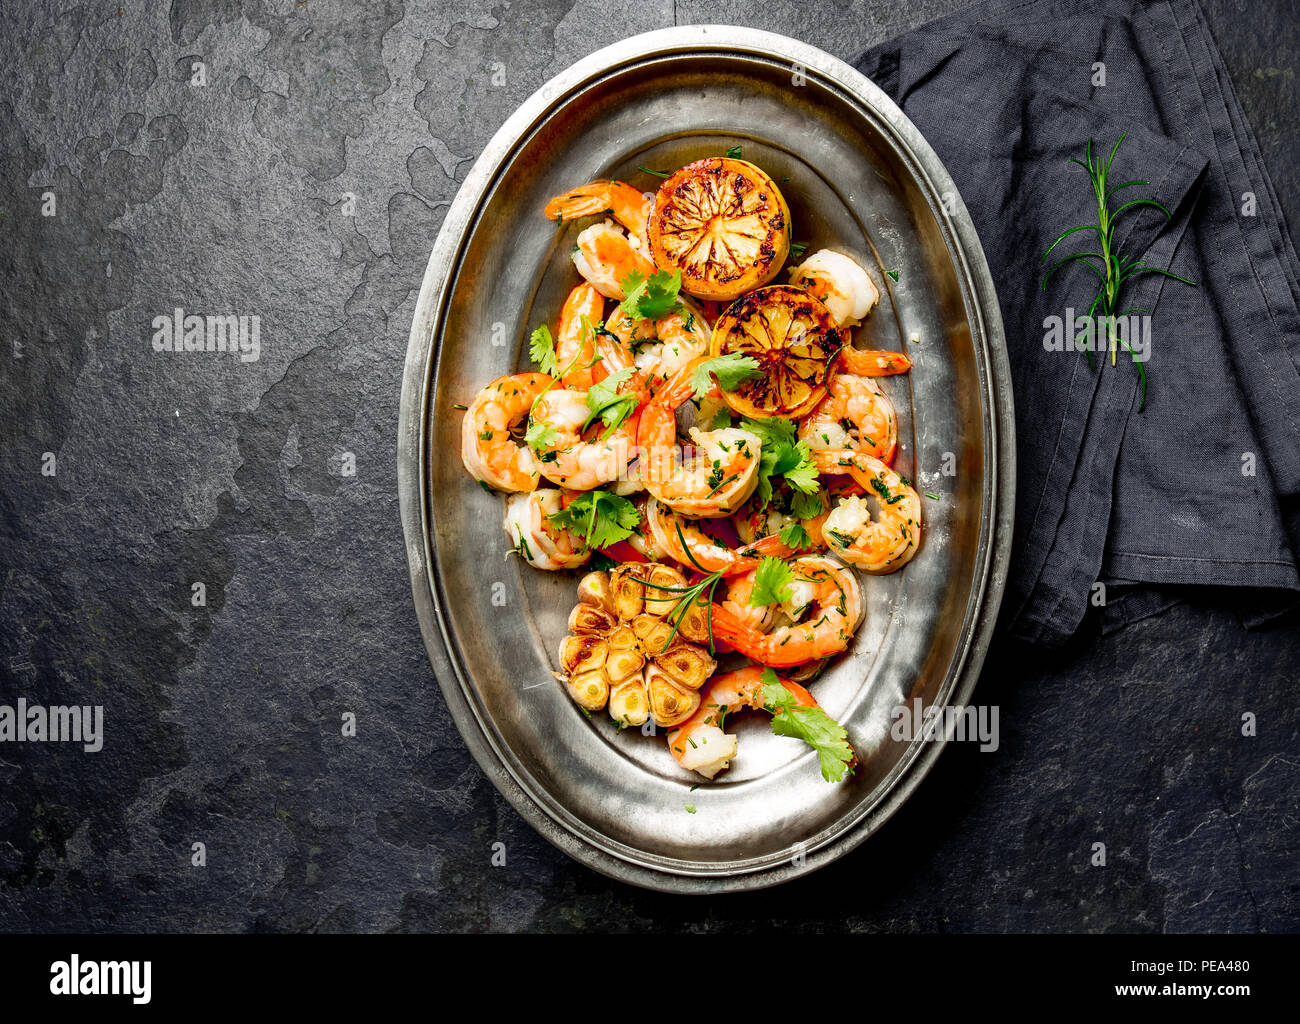 Grilled fried Shrimps Prawns on oval metal plate. Dark background. Top view - Stock Image